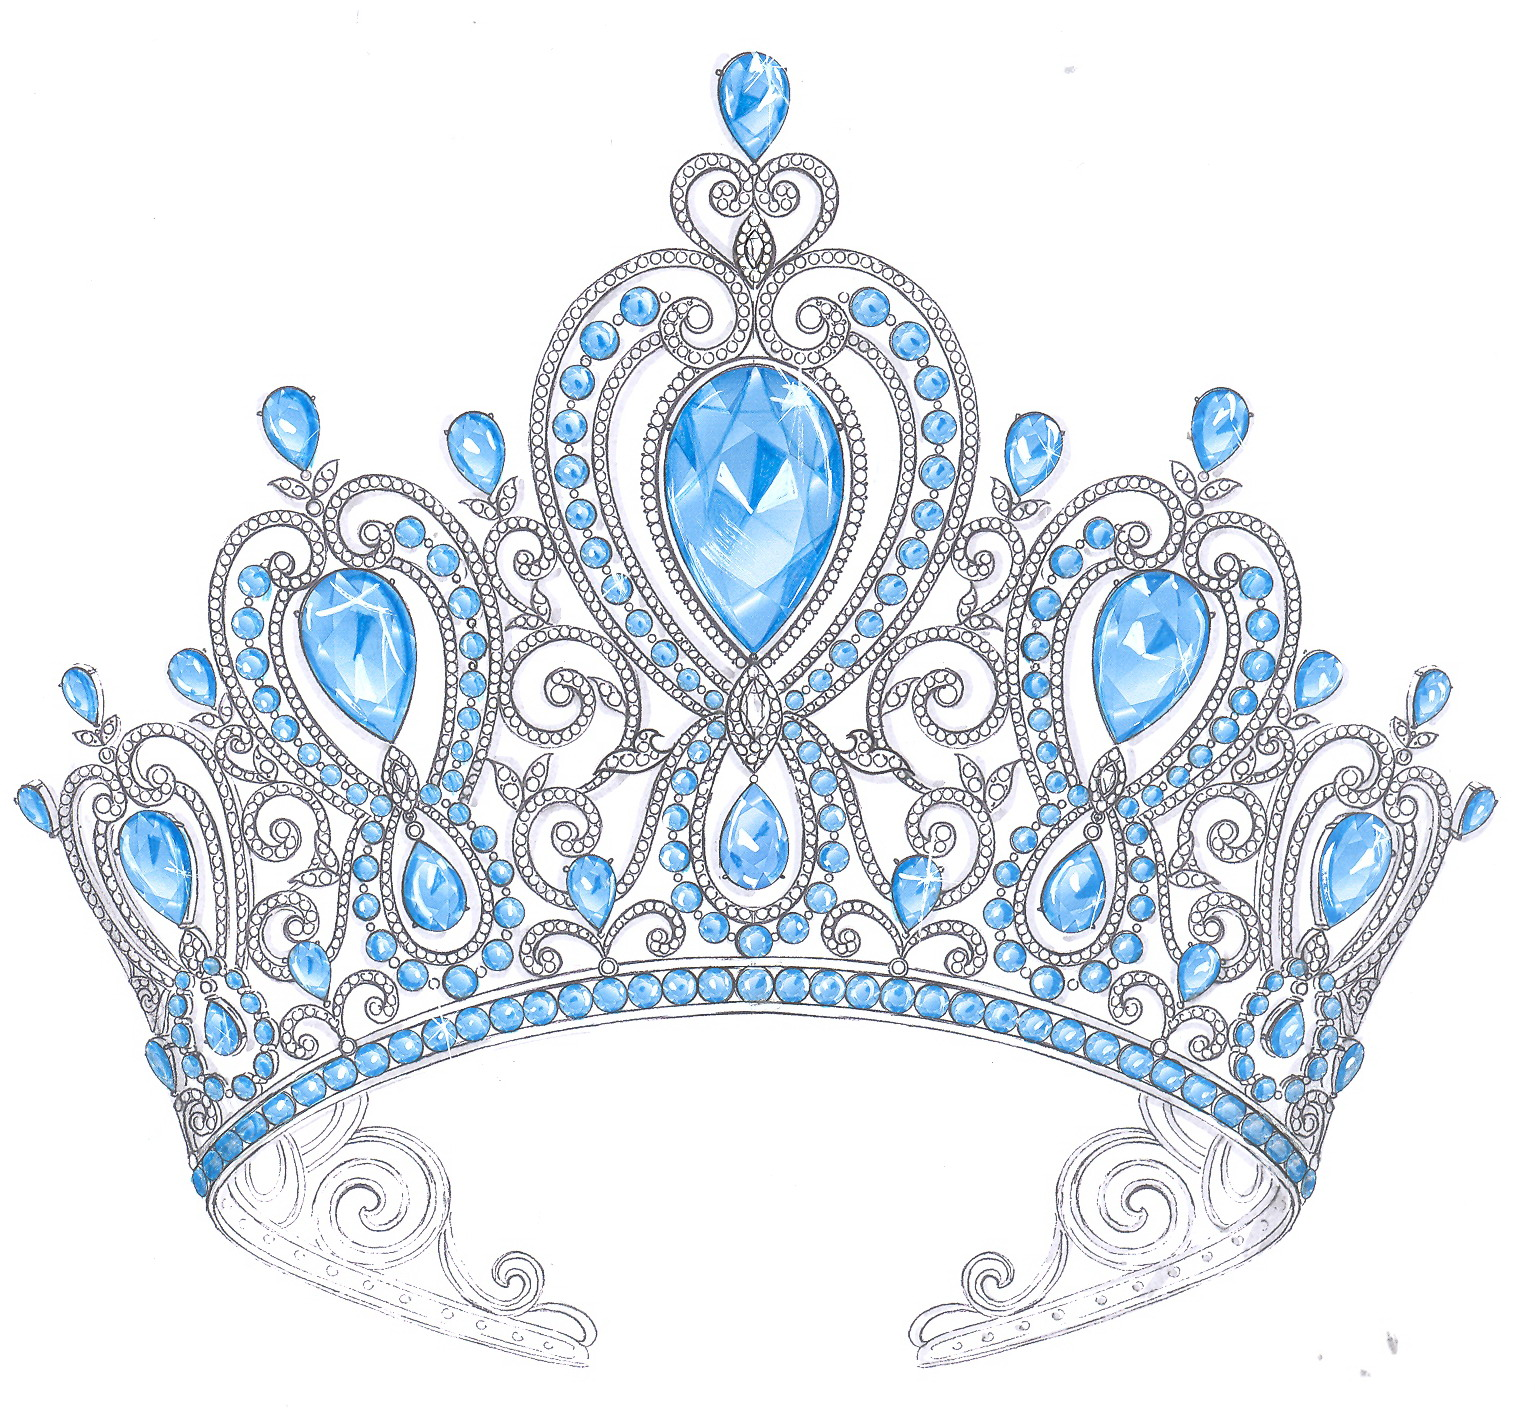 Free Queens Crown Png, Download Free Clip Art, Free Clip Art.